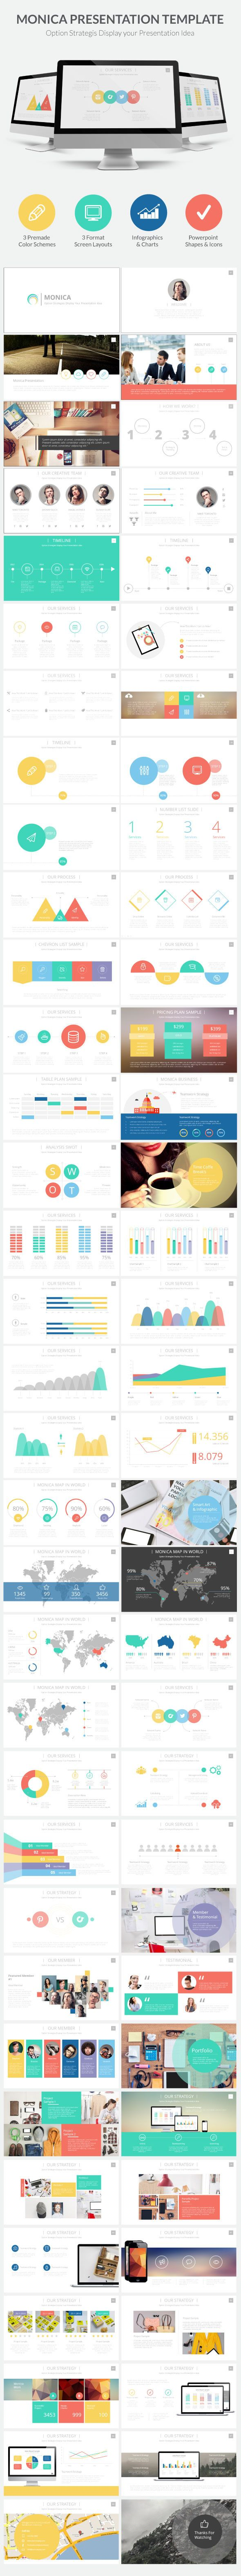 Monica Presentation Template (PowerPoint Templates)